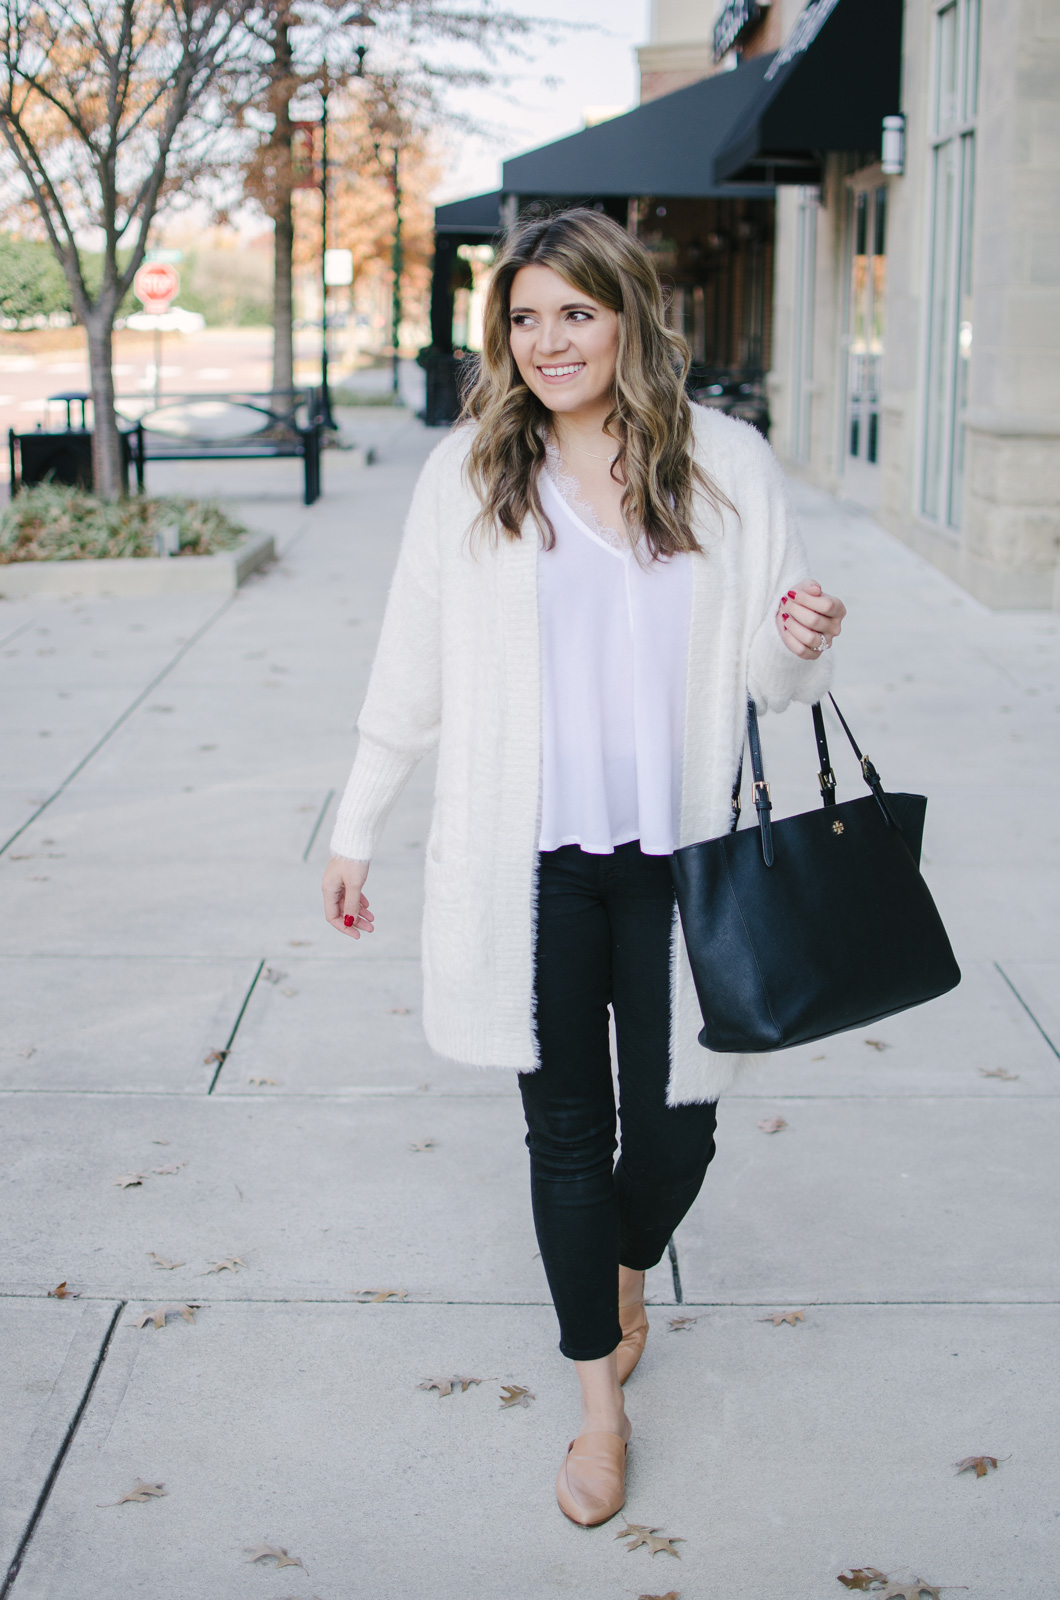 winter white outfit - white winter outfit idea | Get outfit details or see more cute casual Winter outfits at bylaurenm.com